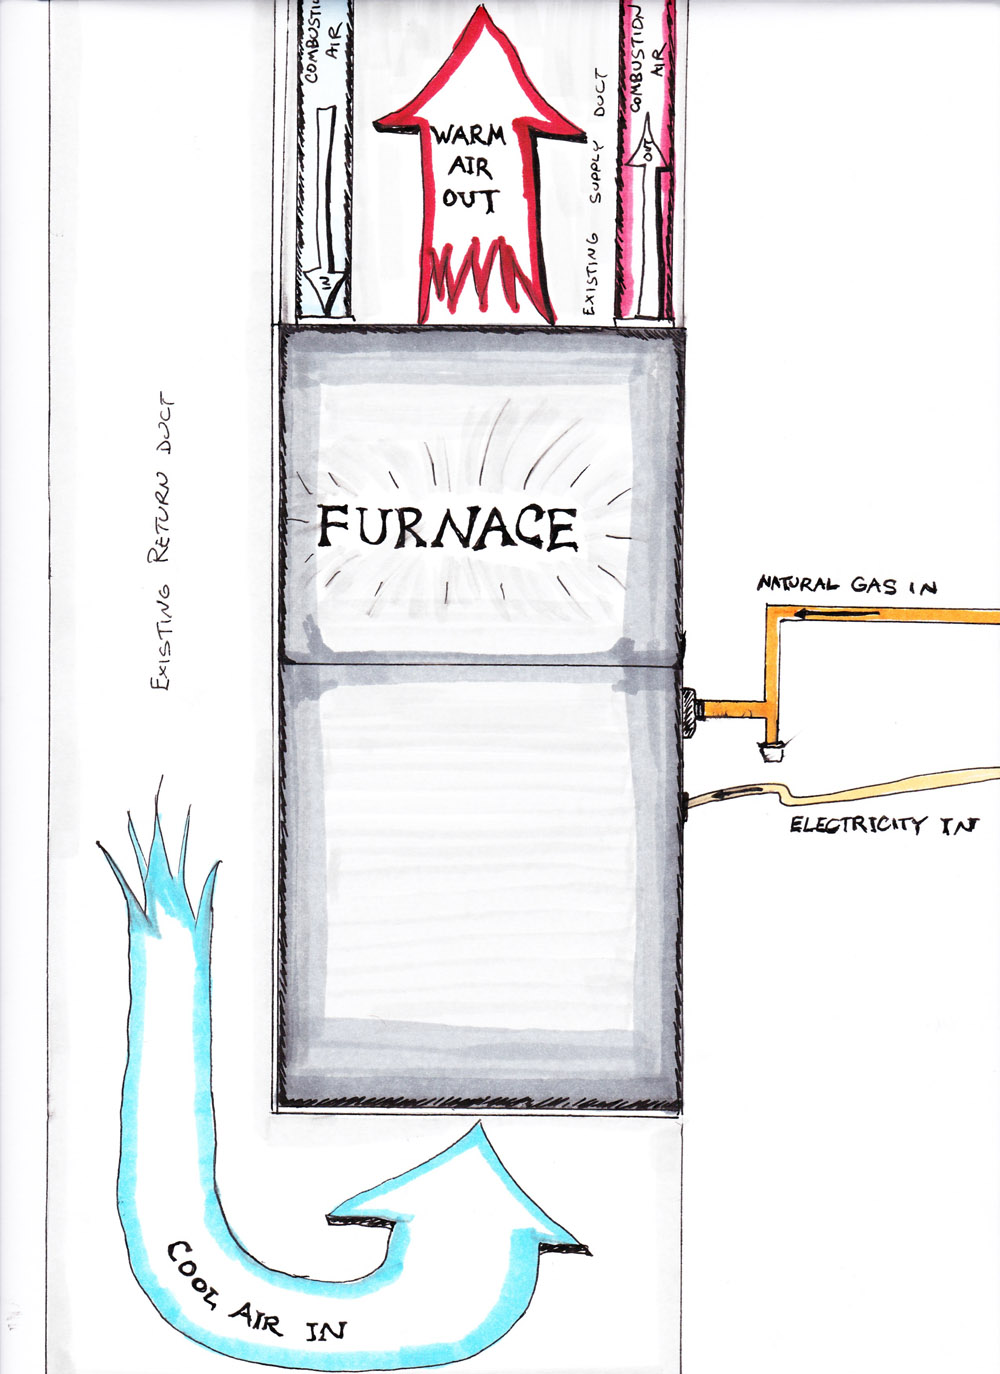 How To Replace Your Own Furnace Mr Money Mustache Electrical Wiring Box Google Patents On Outdoor